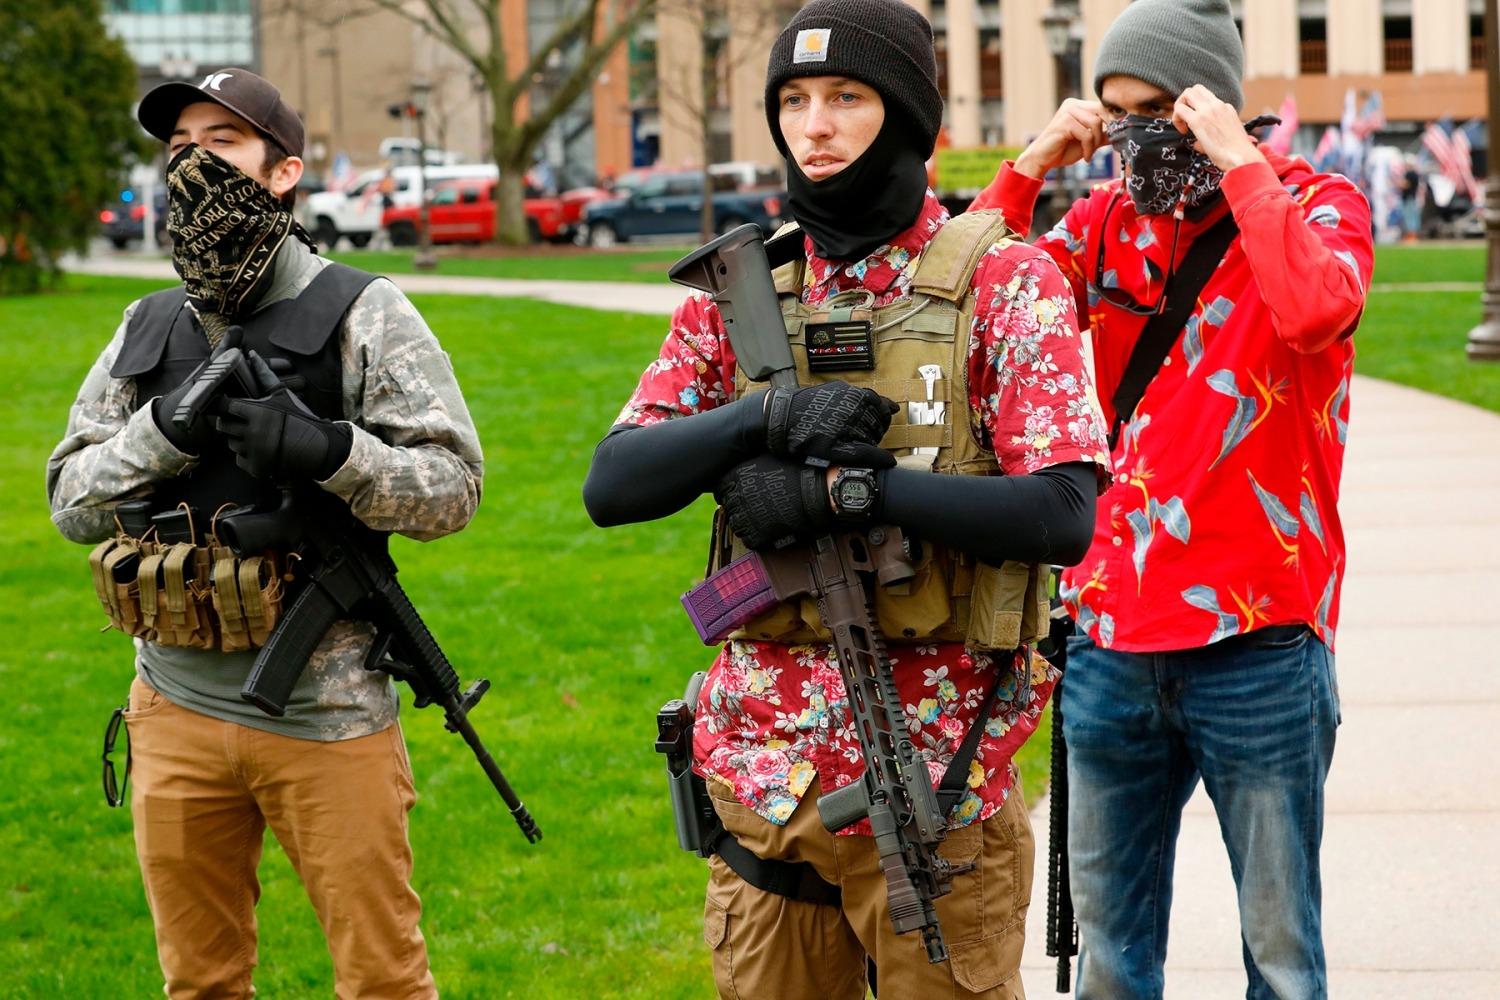 "Armed protesters provide security as demonstrators take part in an ""American Patriot Rally,"" organized on April 30, 2020, by Michigan United for Liberty on the steps of the Michigan State Capitol in Lansing, demanding the reopening of businesses. - Michigan's stay-at-home order declared by Democratic Governor Gretchen Whitmer is set to expire after May 15. (Photo by JEFF KOWALSKY / AFP) (Photo by JEFF KOWALSKY/AFP via Getty Images)"